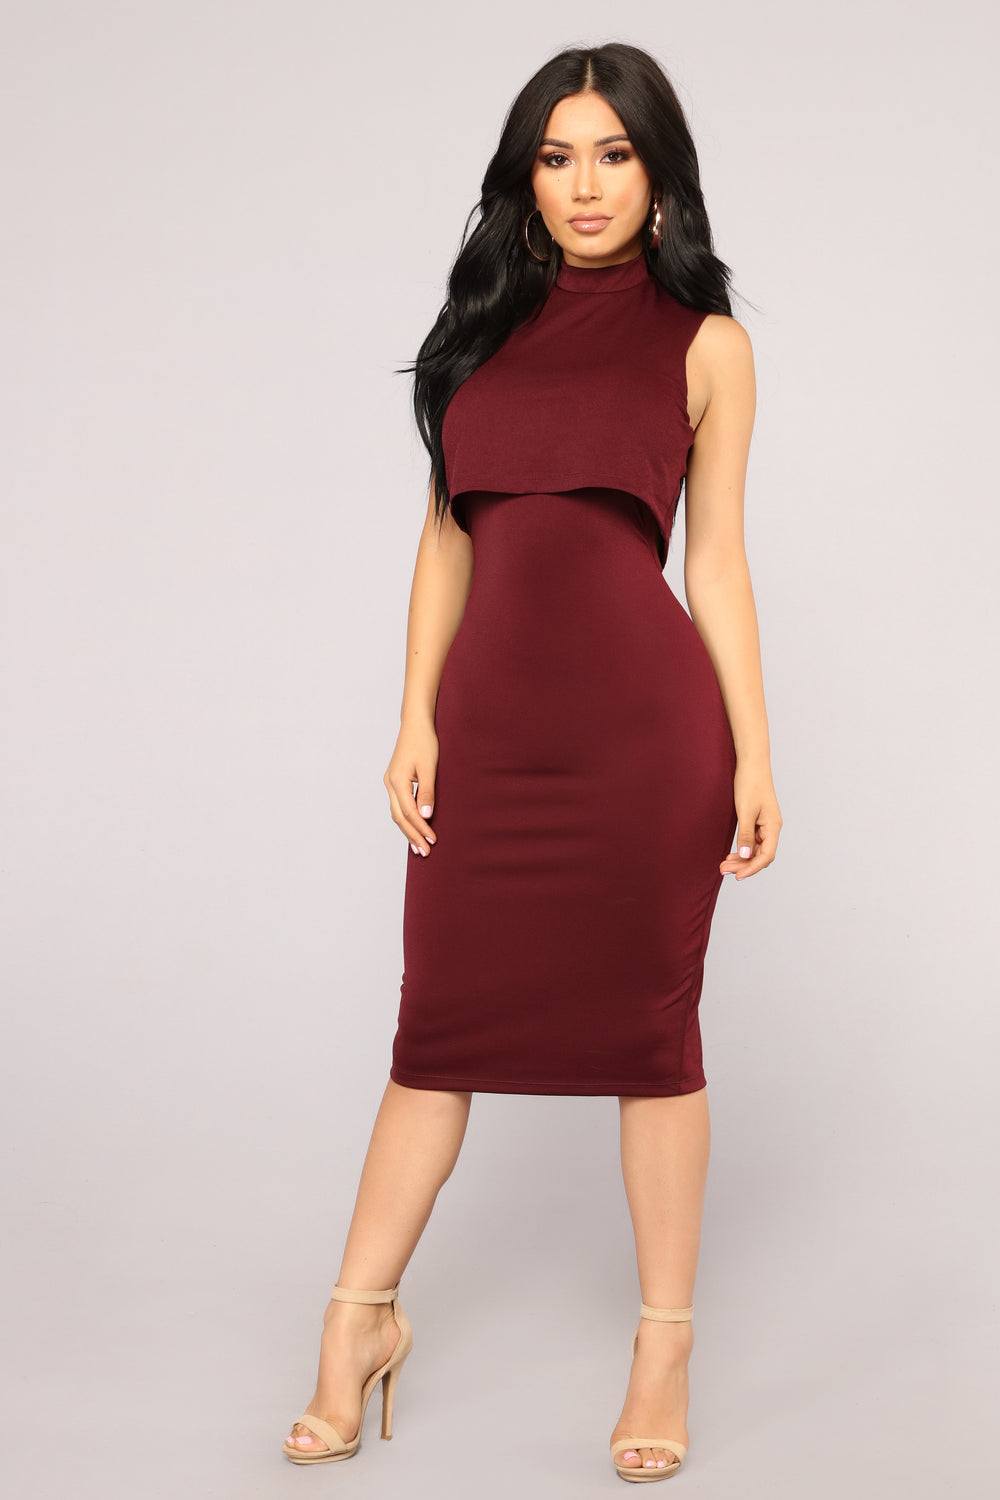 Long Cut-Out Burgundy Red Glitter Prom Dress-PromGirl  Maroon Dress